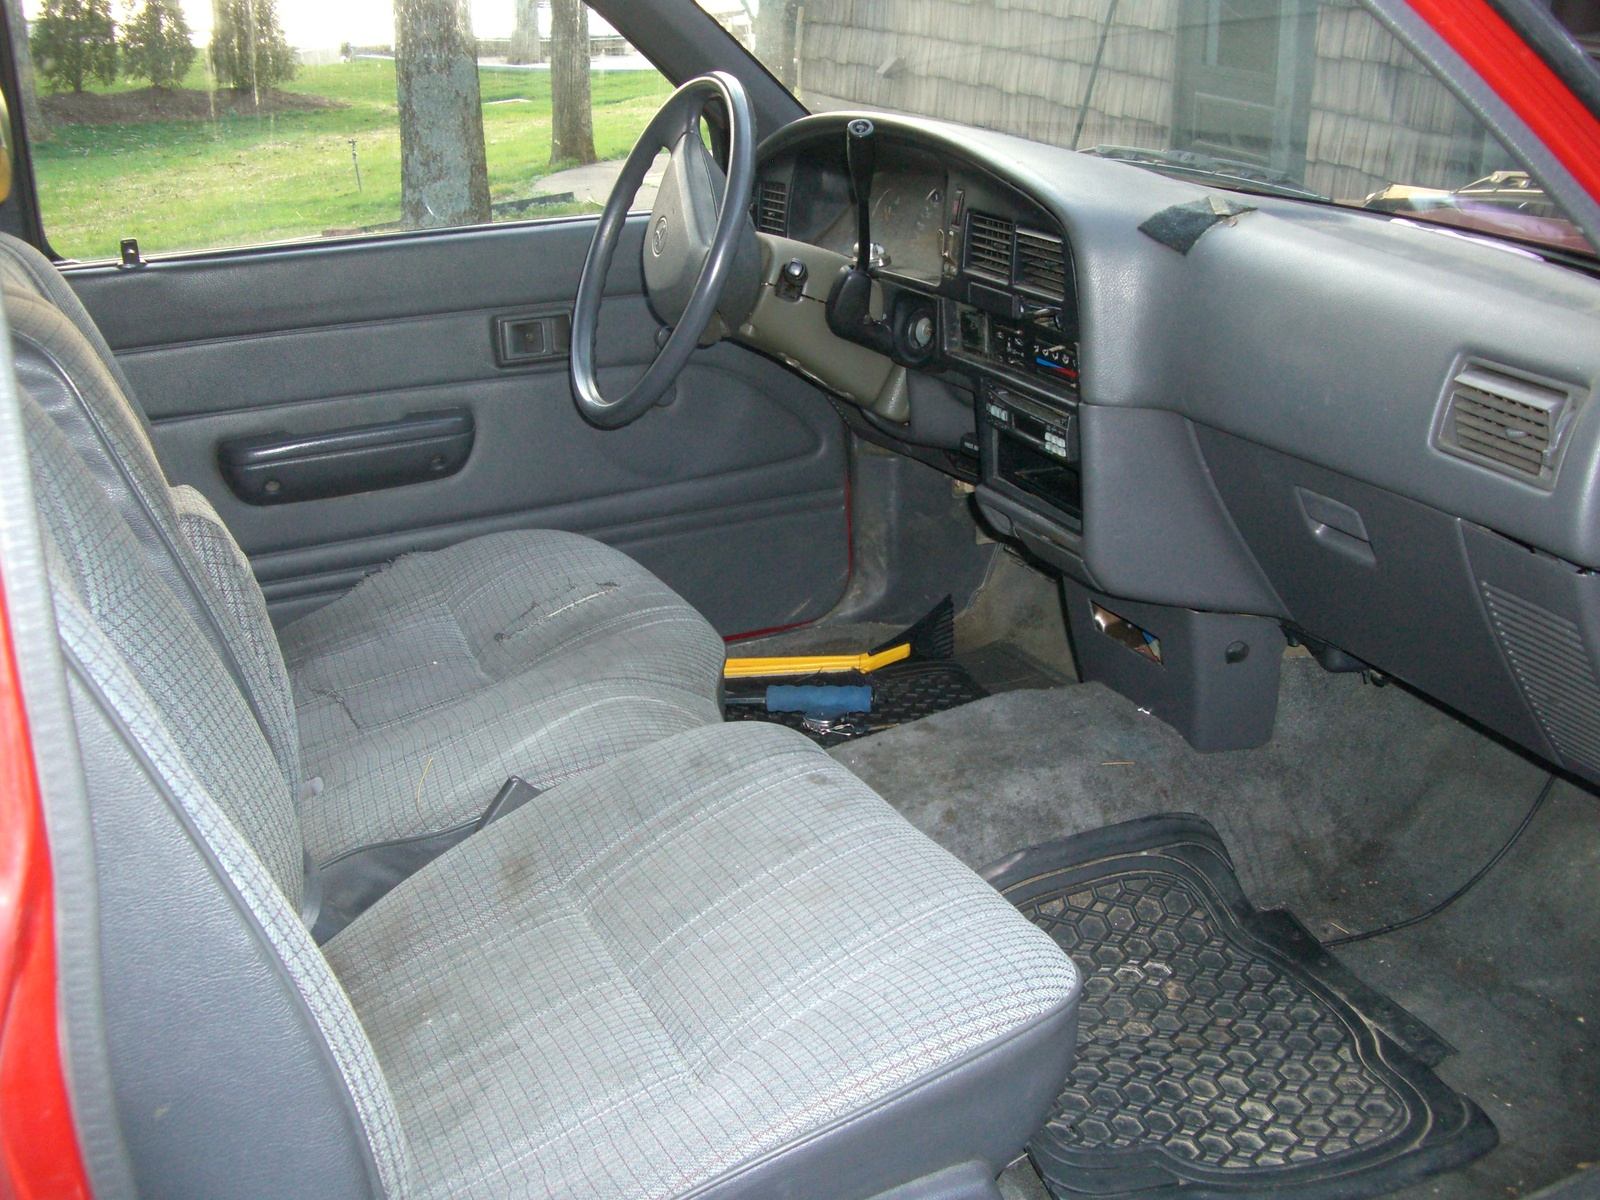 1991 toyota pickup 2 dr deluxe extended cab sb interior - 1993 toyota pickup interior parts ...